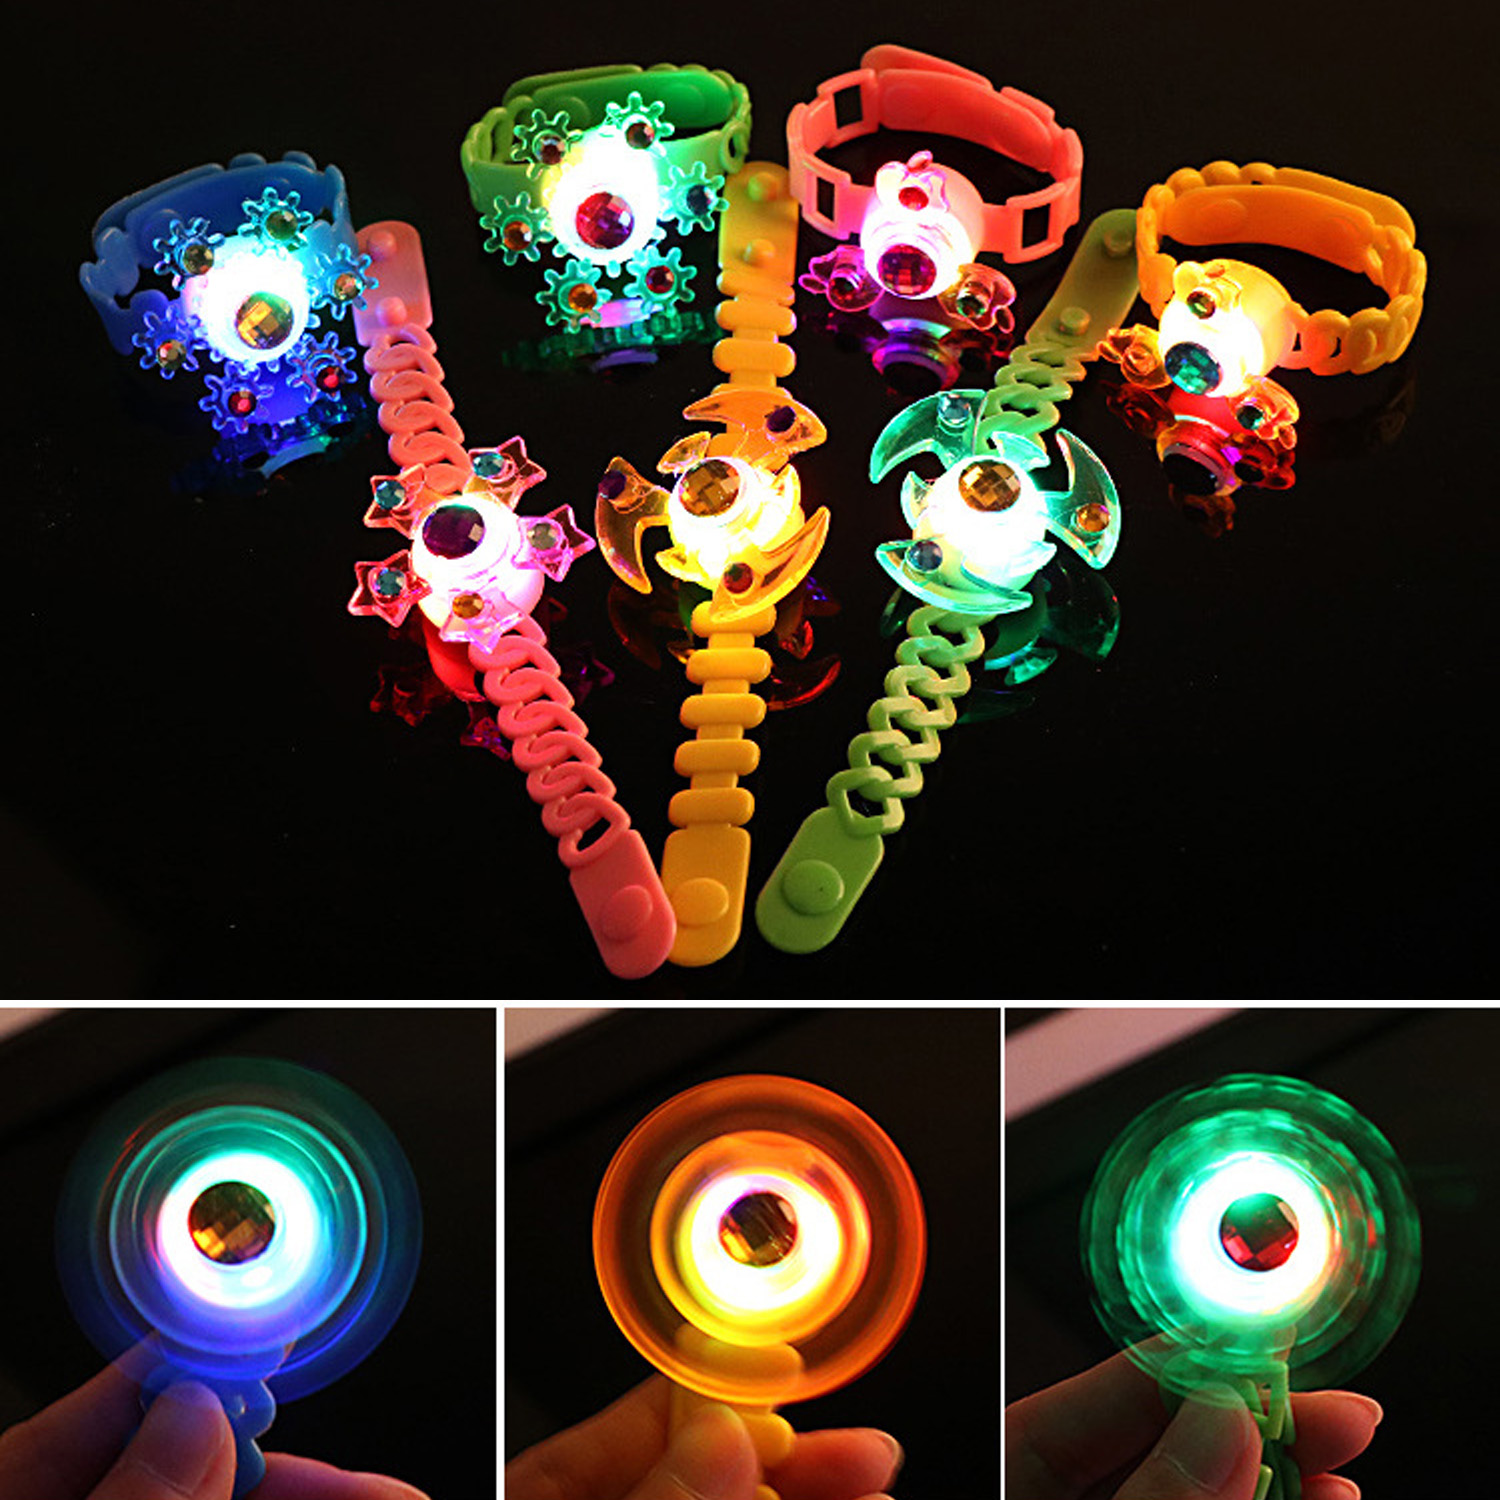 12PCS Assorted Colors Adjustable LED Light-up Spiral Top Bracelets Toy For Kids Children Adults Birthday Halloween Party Favors